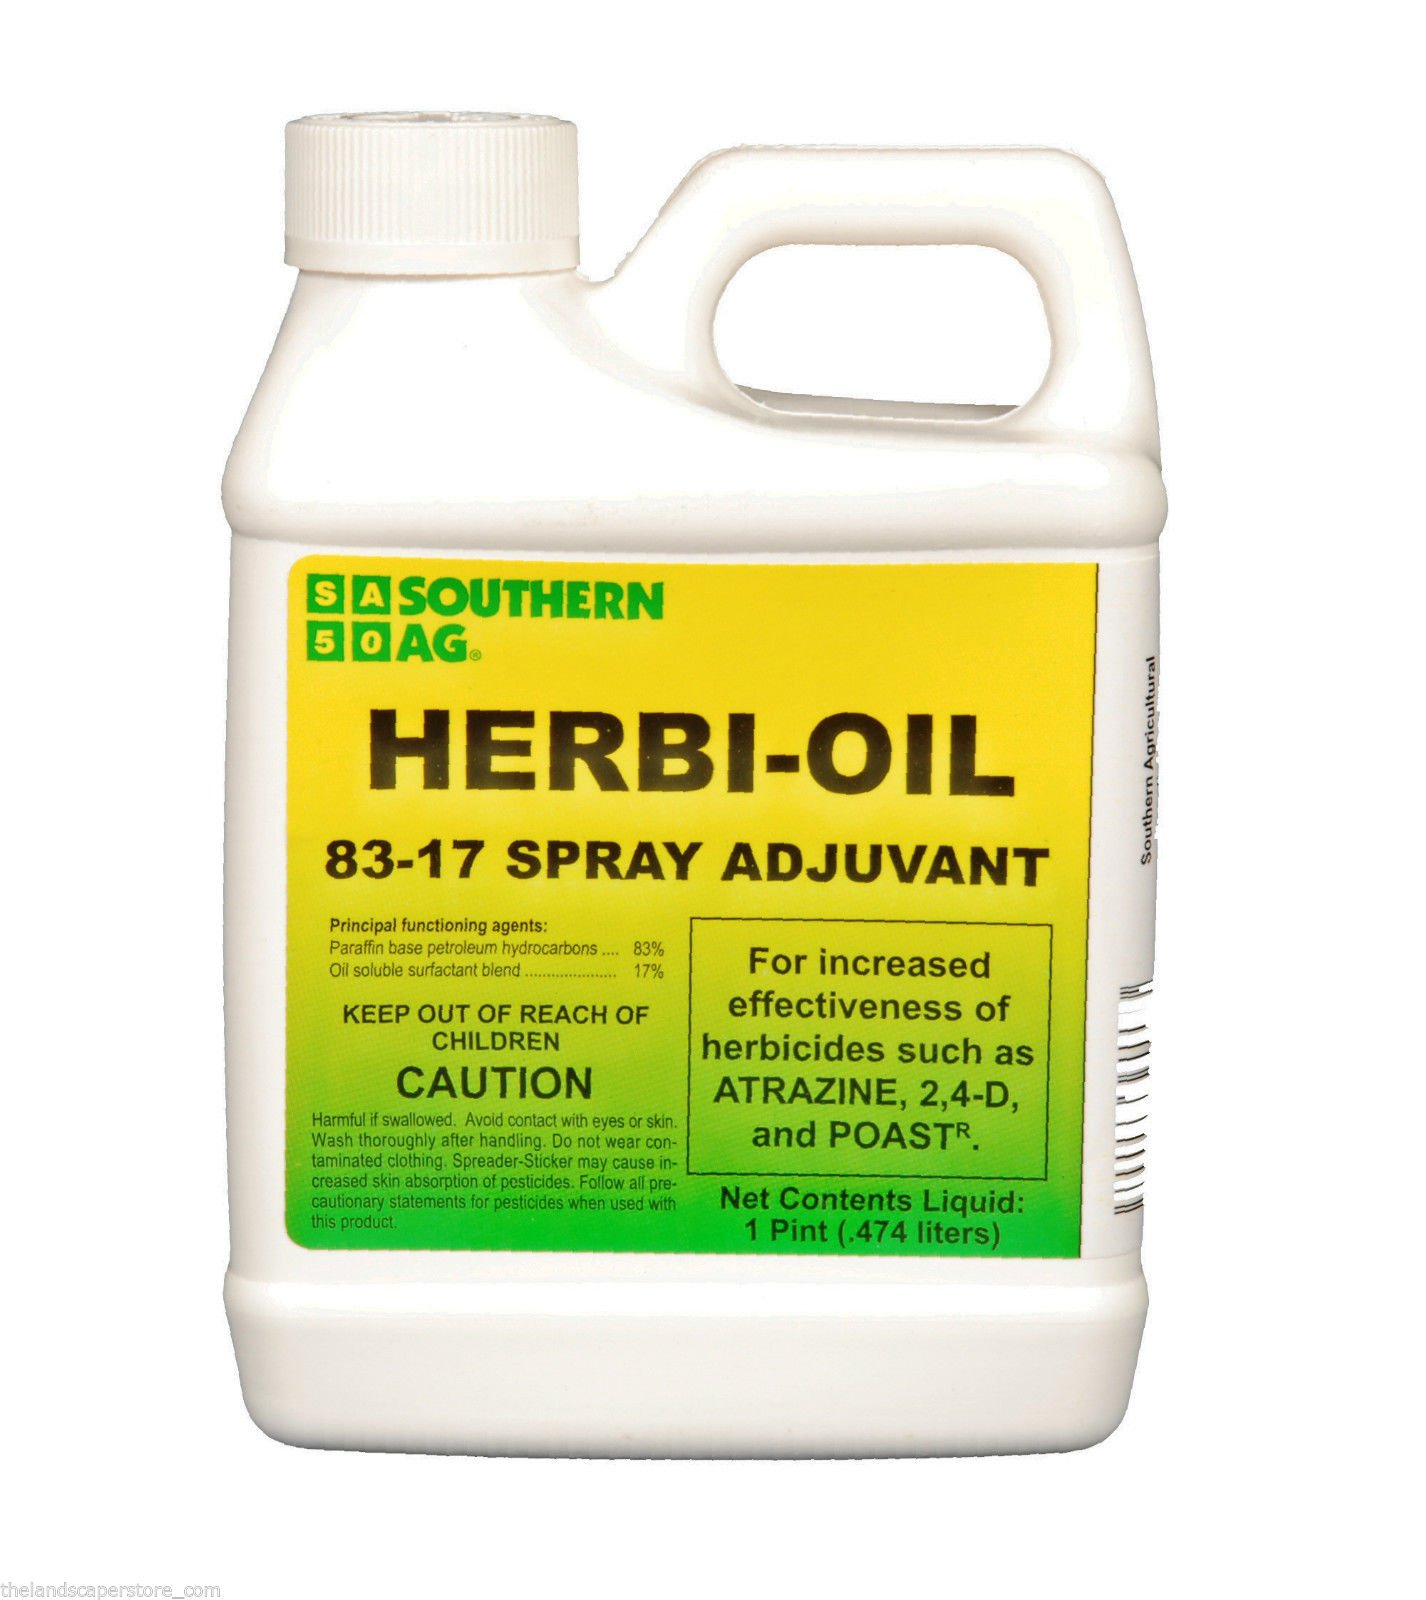 (Ship from USA) Herbi - Oil 83-17 Surfactant Spray Adjuvant for Herbicides 16oz Pint /ITEM NO#8Y-IFW81854262110